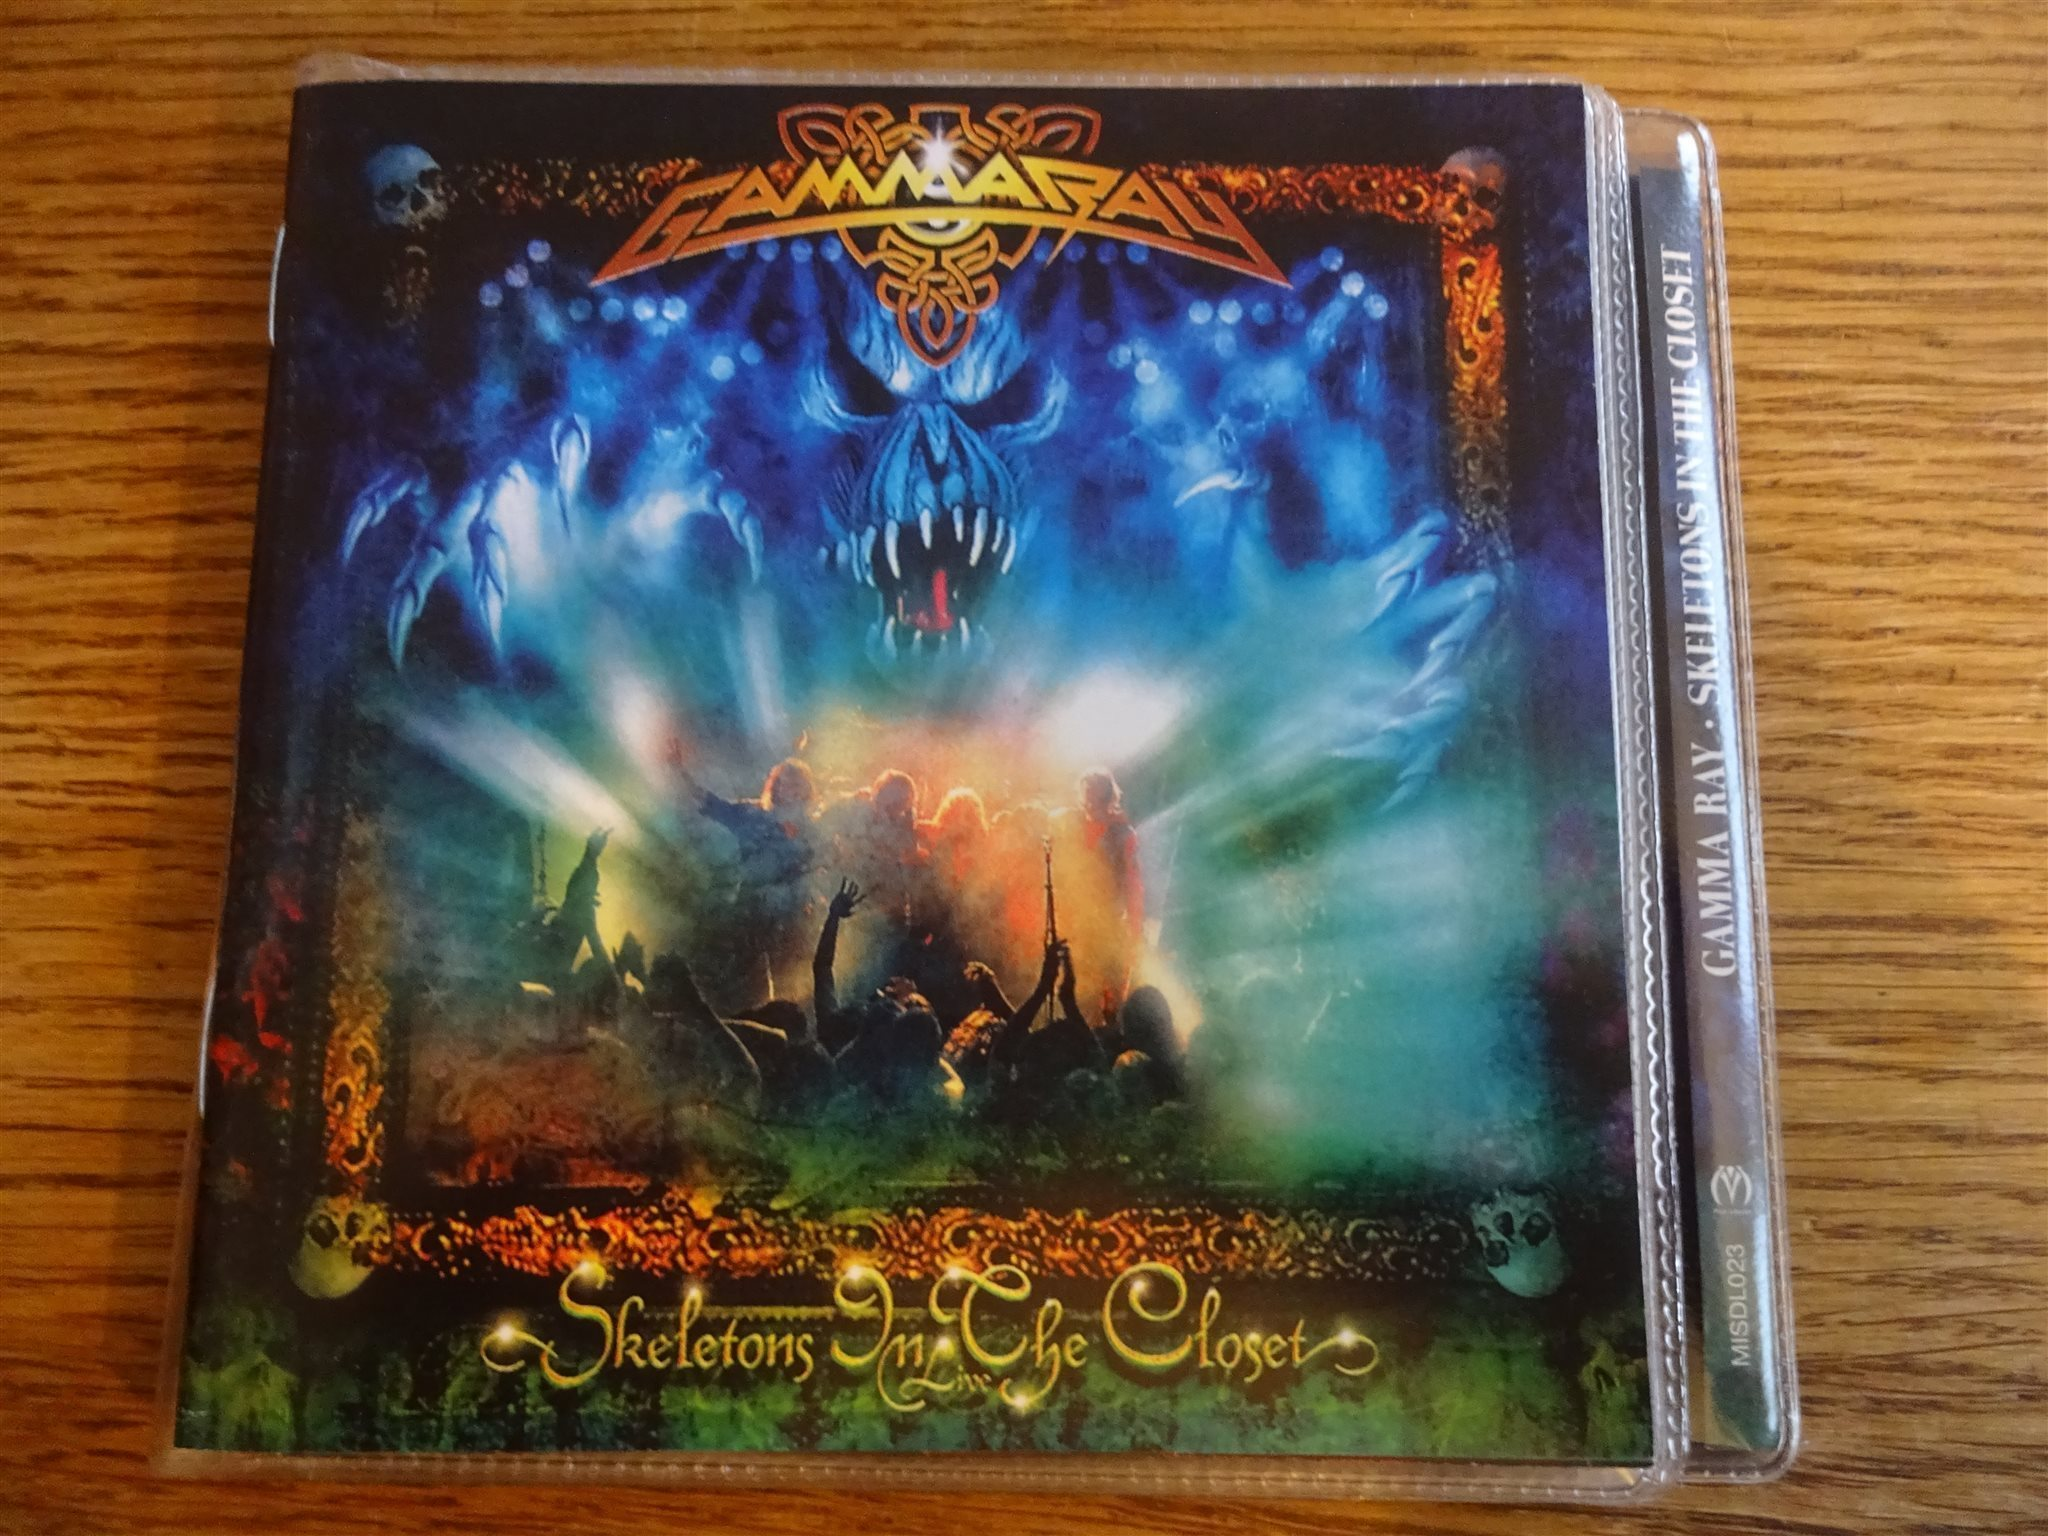 Gamma Ray Skeletons In The Closet Rare Dubbel Cd I Fint Skick